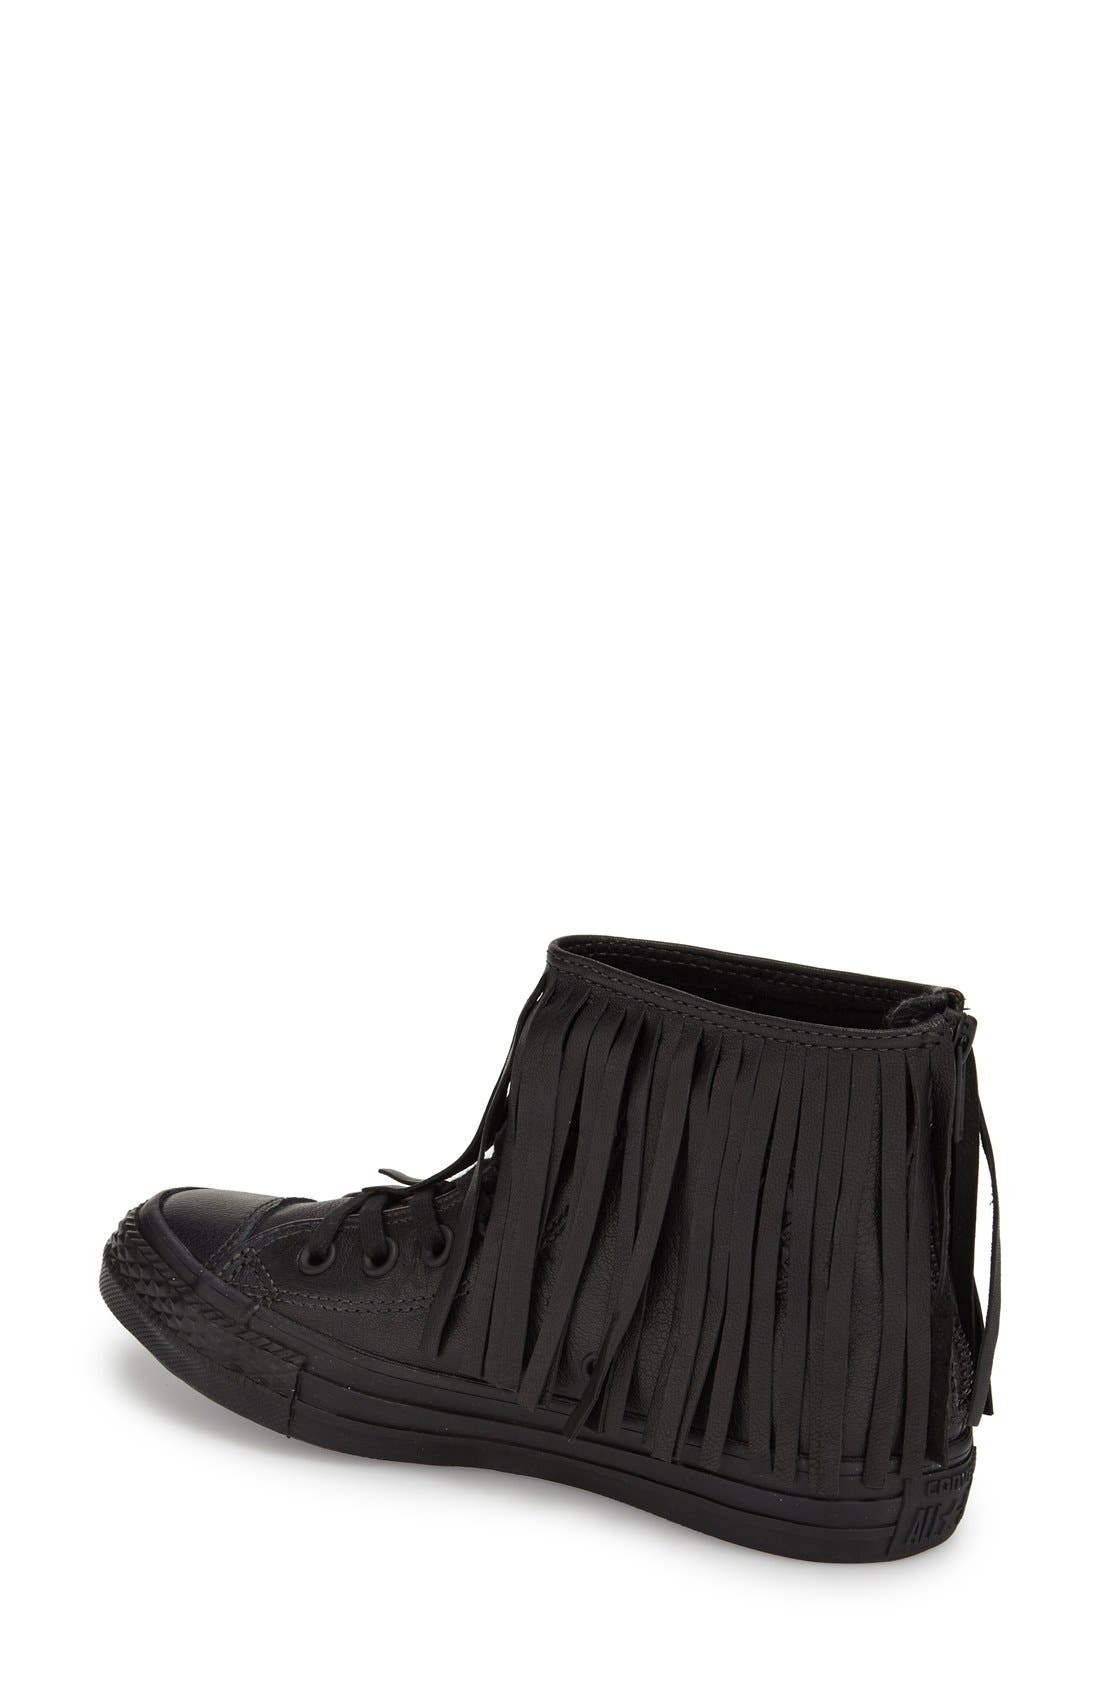 Alternate Image 2  - Converse Chuck Taylor® All Star® Fringe Leather High Top Sneaker (Women)